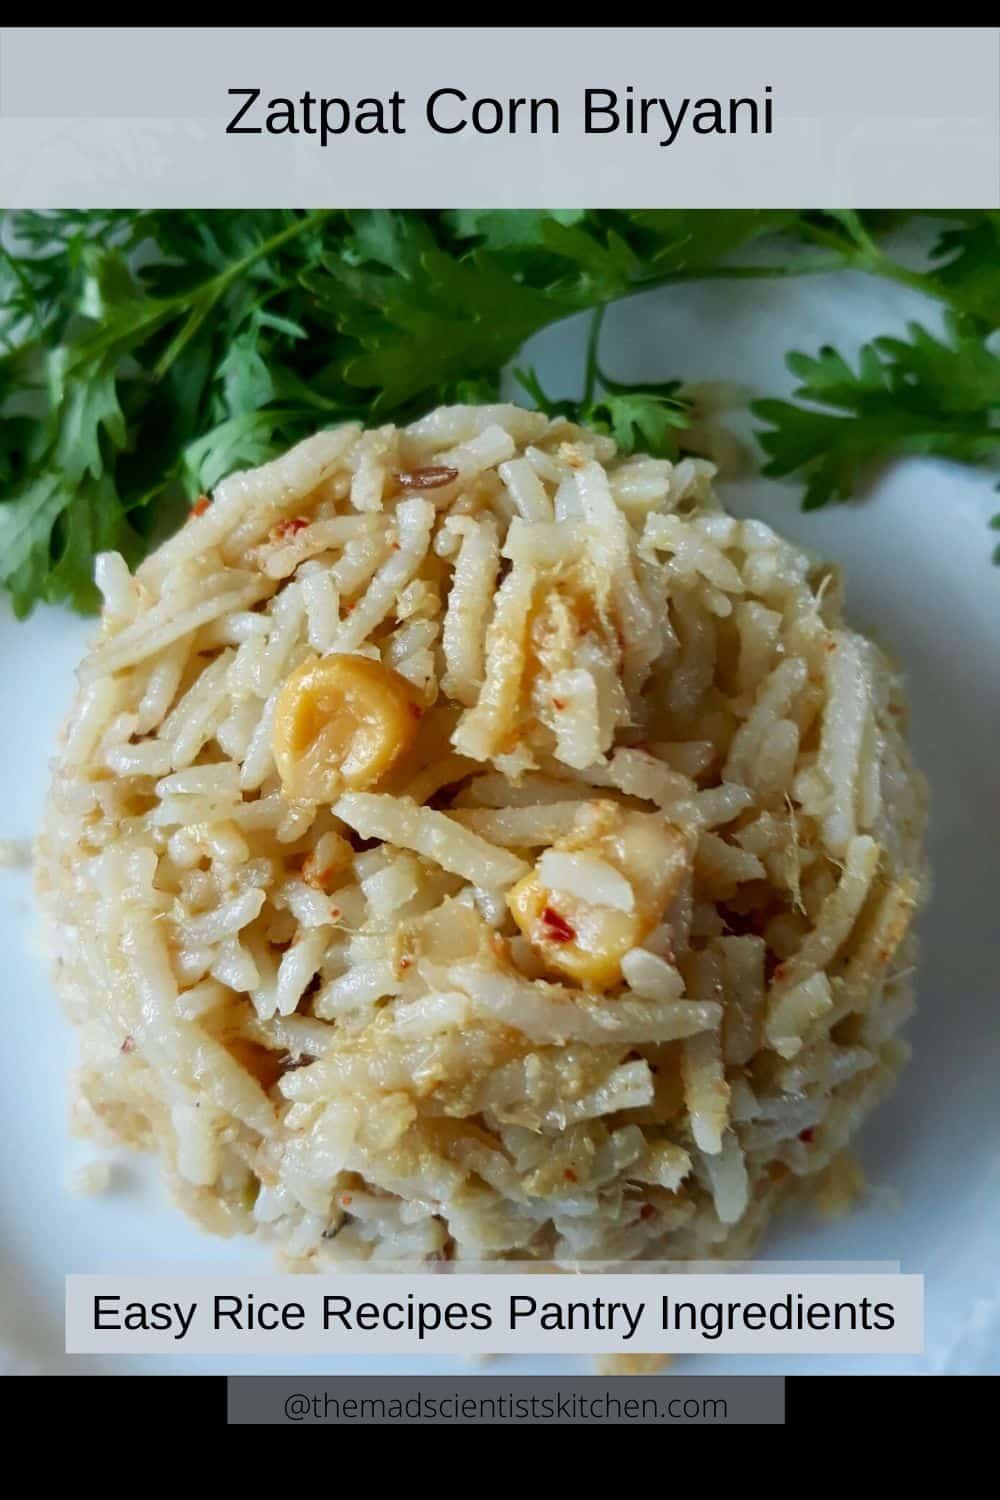 Zatpat Corn Biryani, a simple rice dish